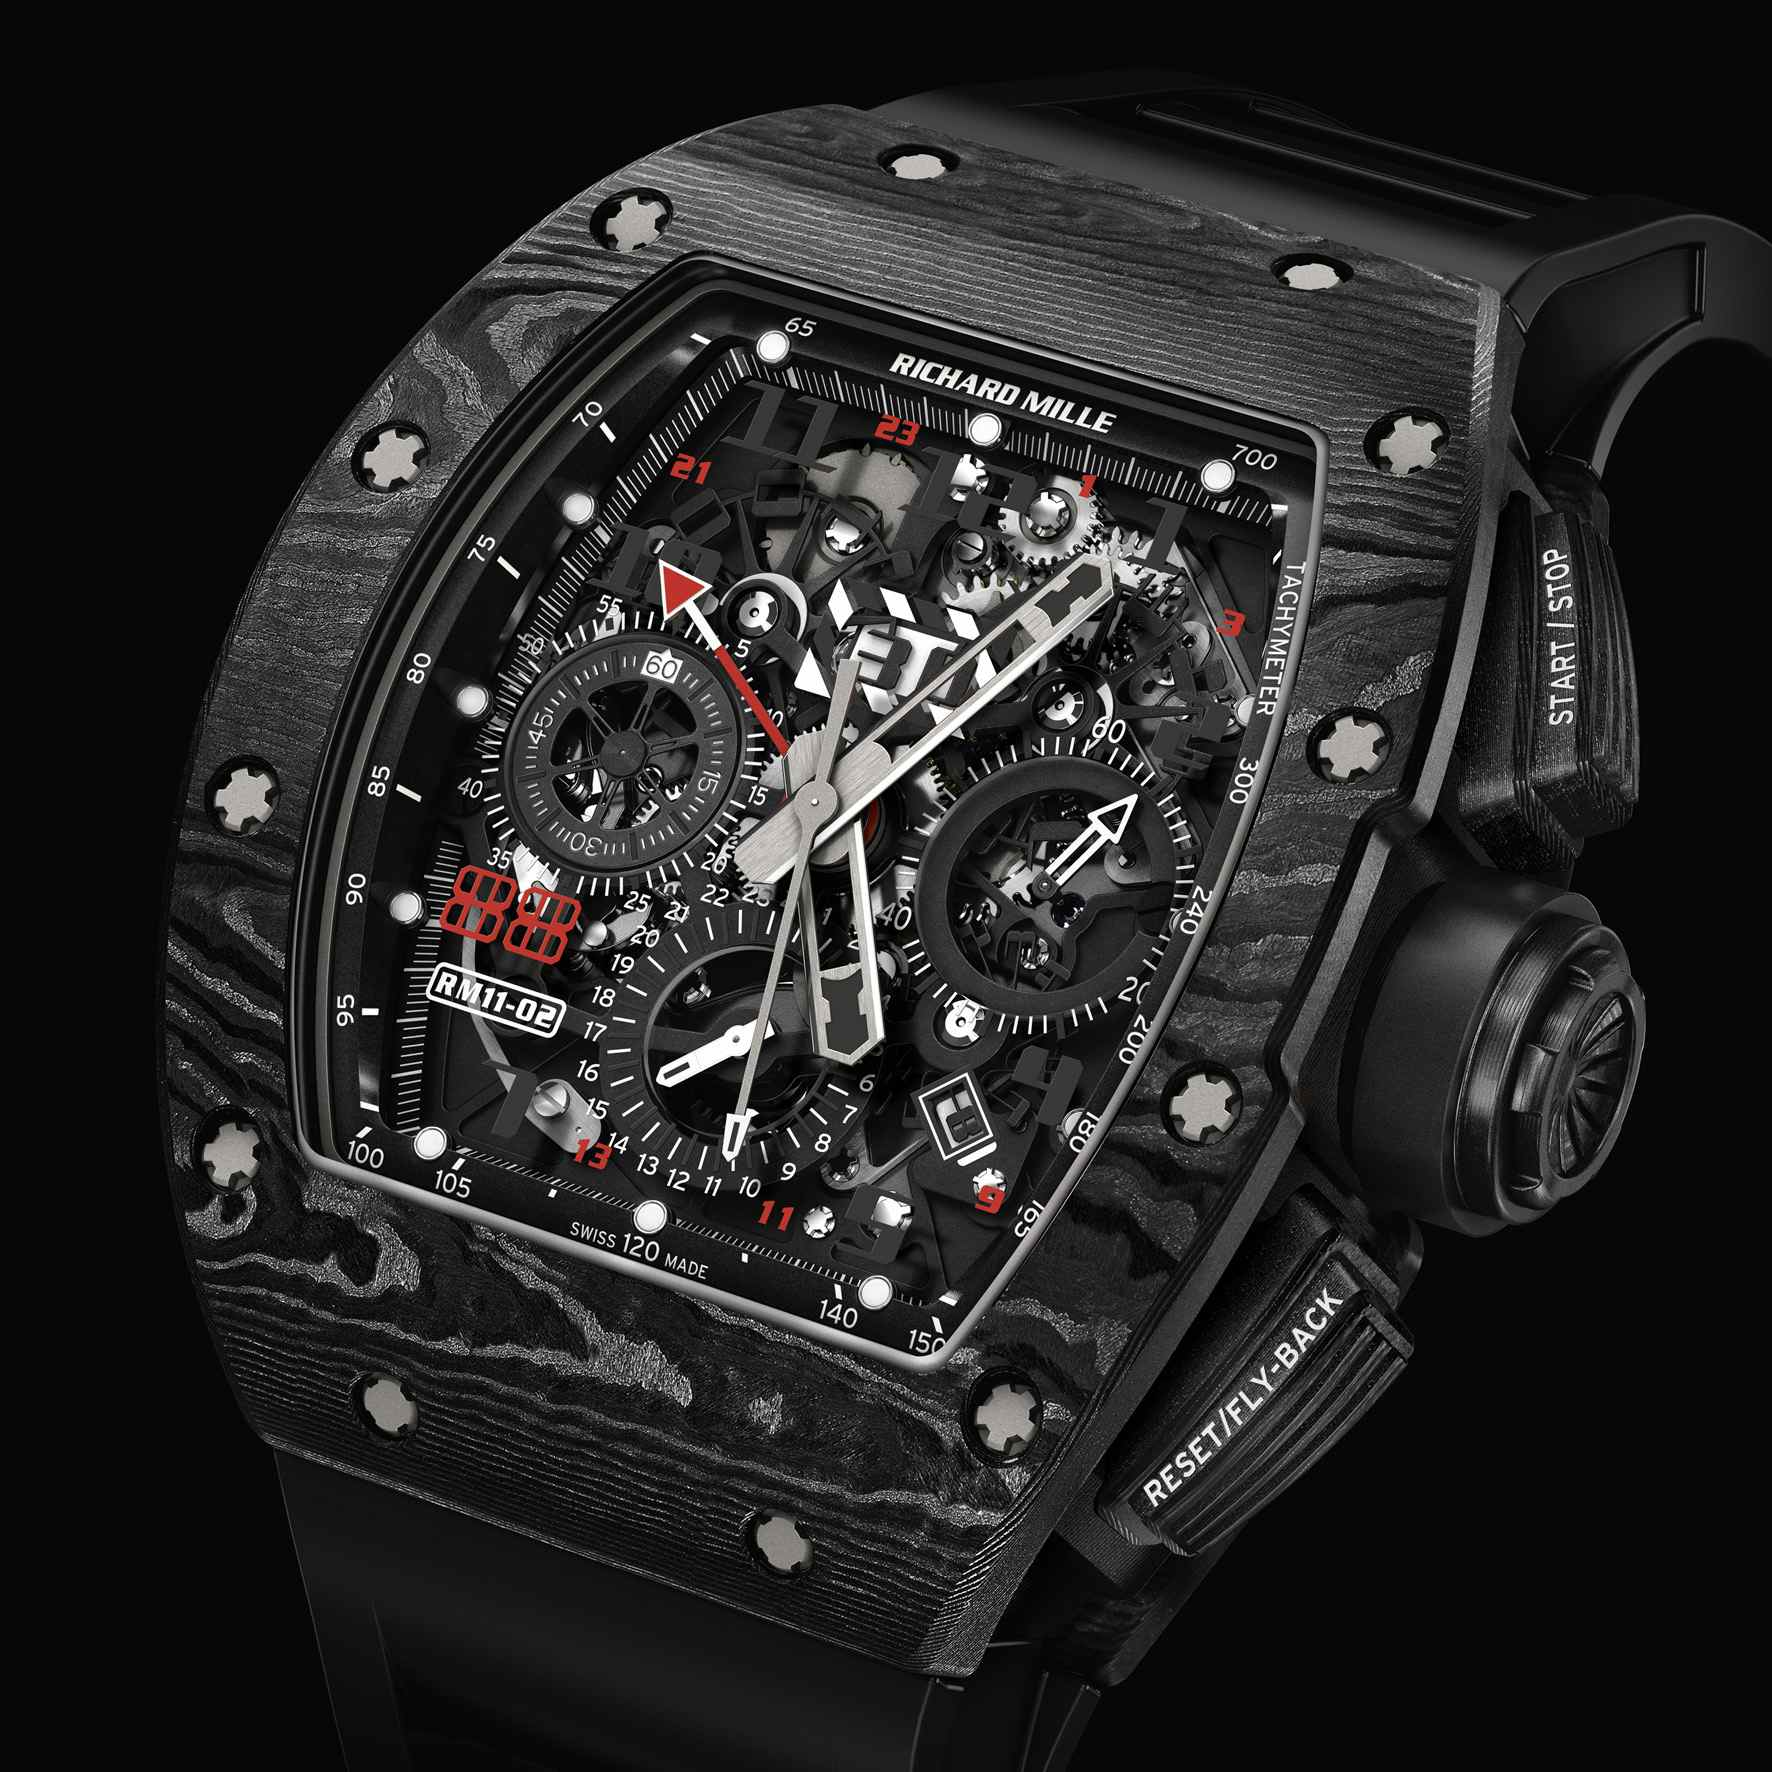 Richard Mille RM 11-02 Automatic Flyback Chronograph Dual Time Zone Jet Black Replica